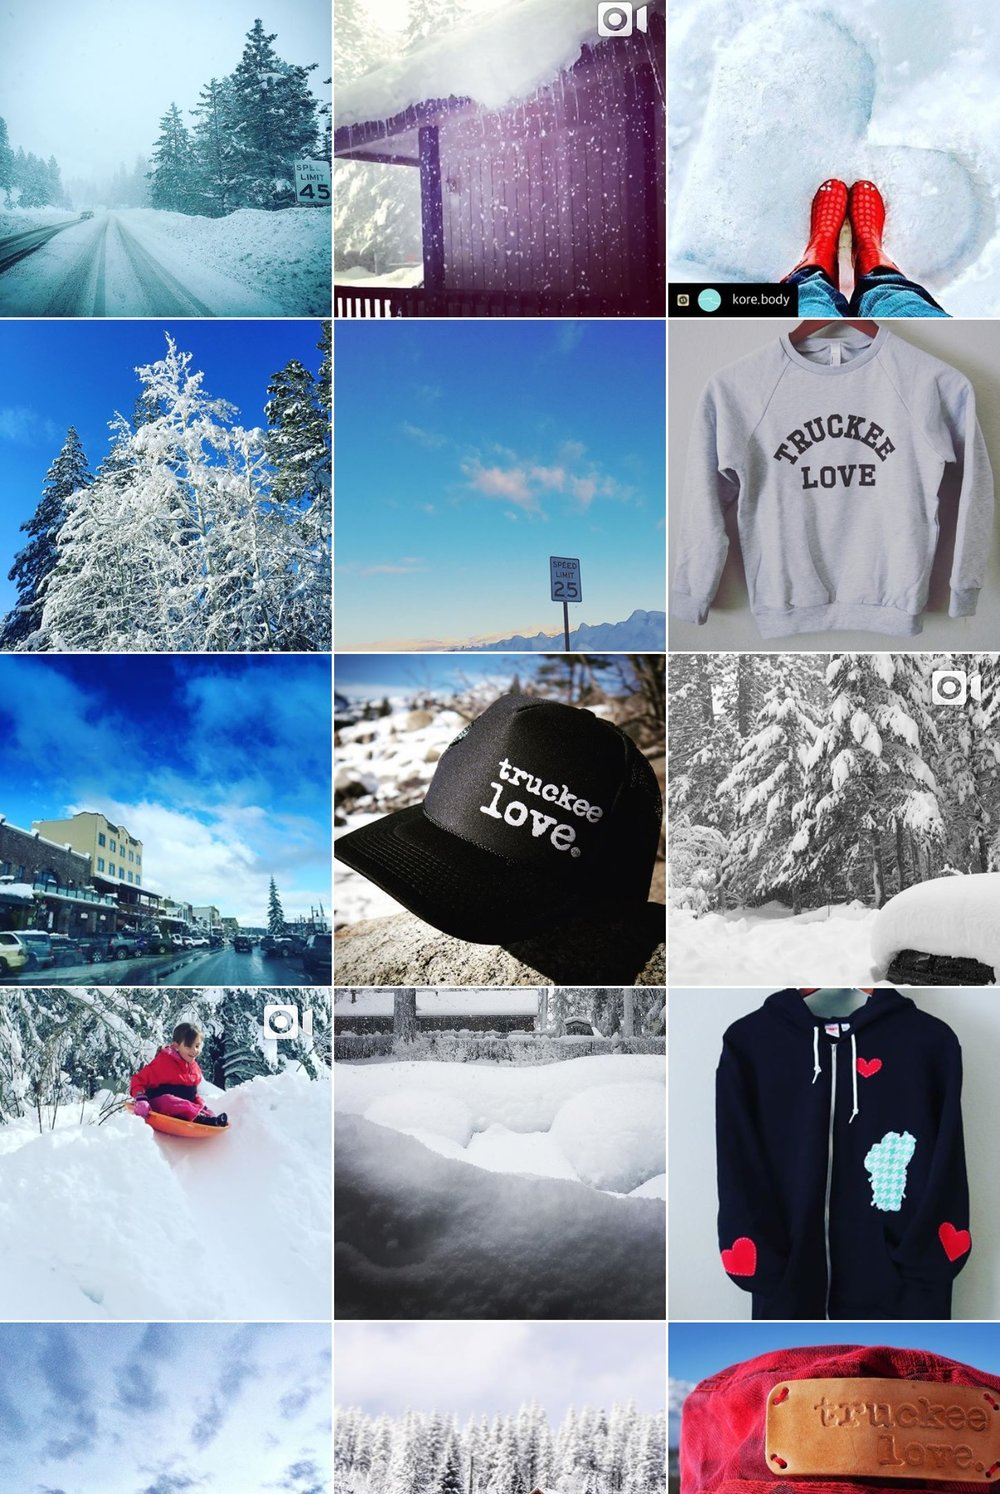 Images from Truckee Love Instagram